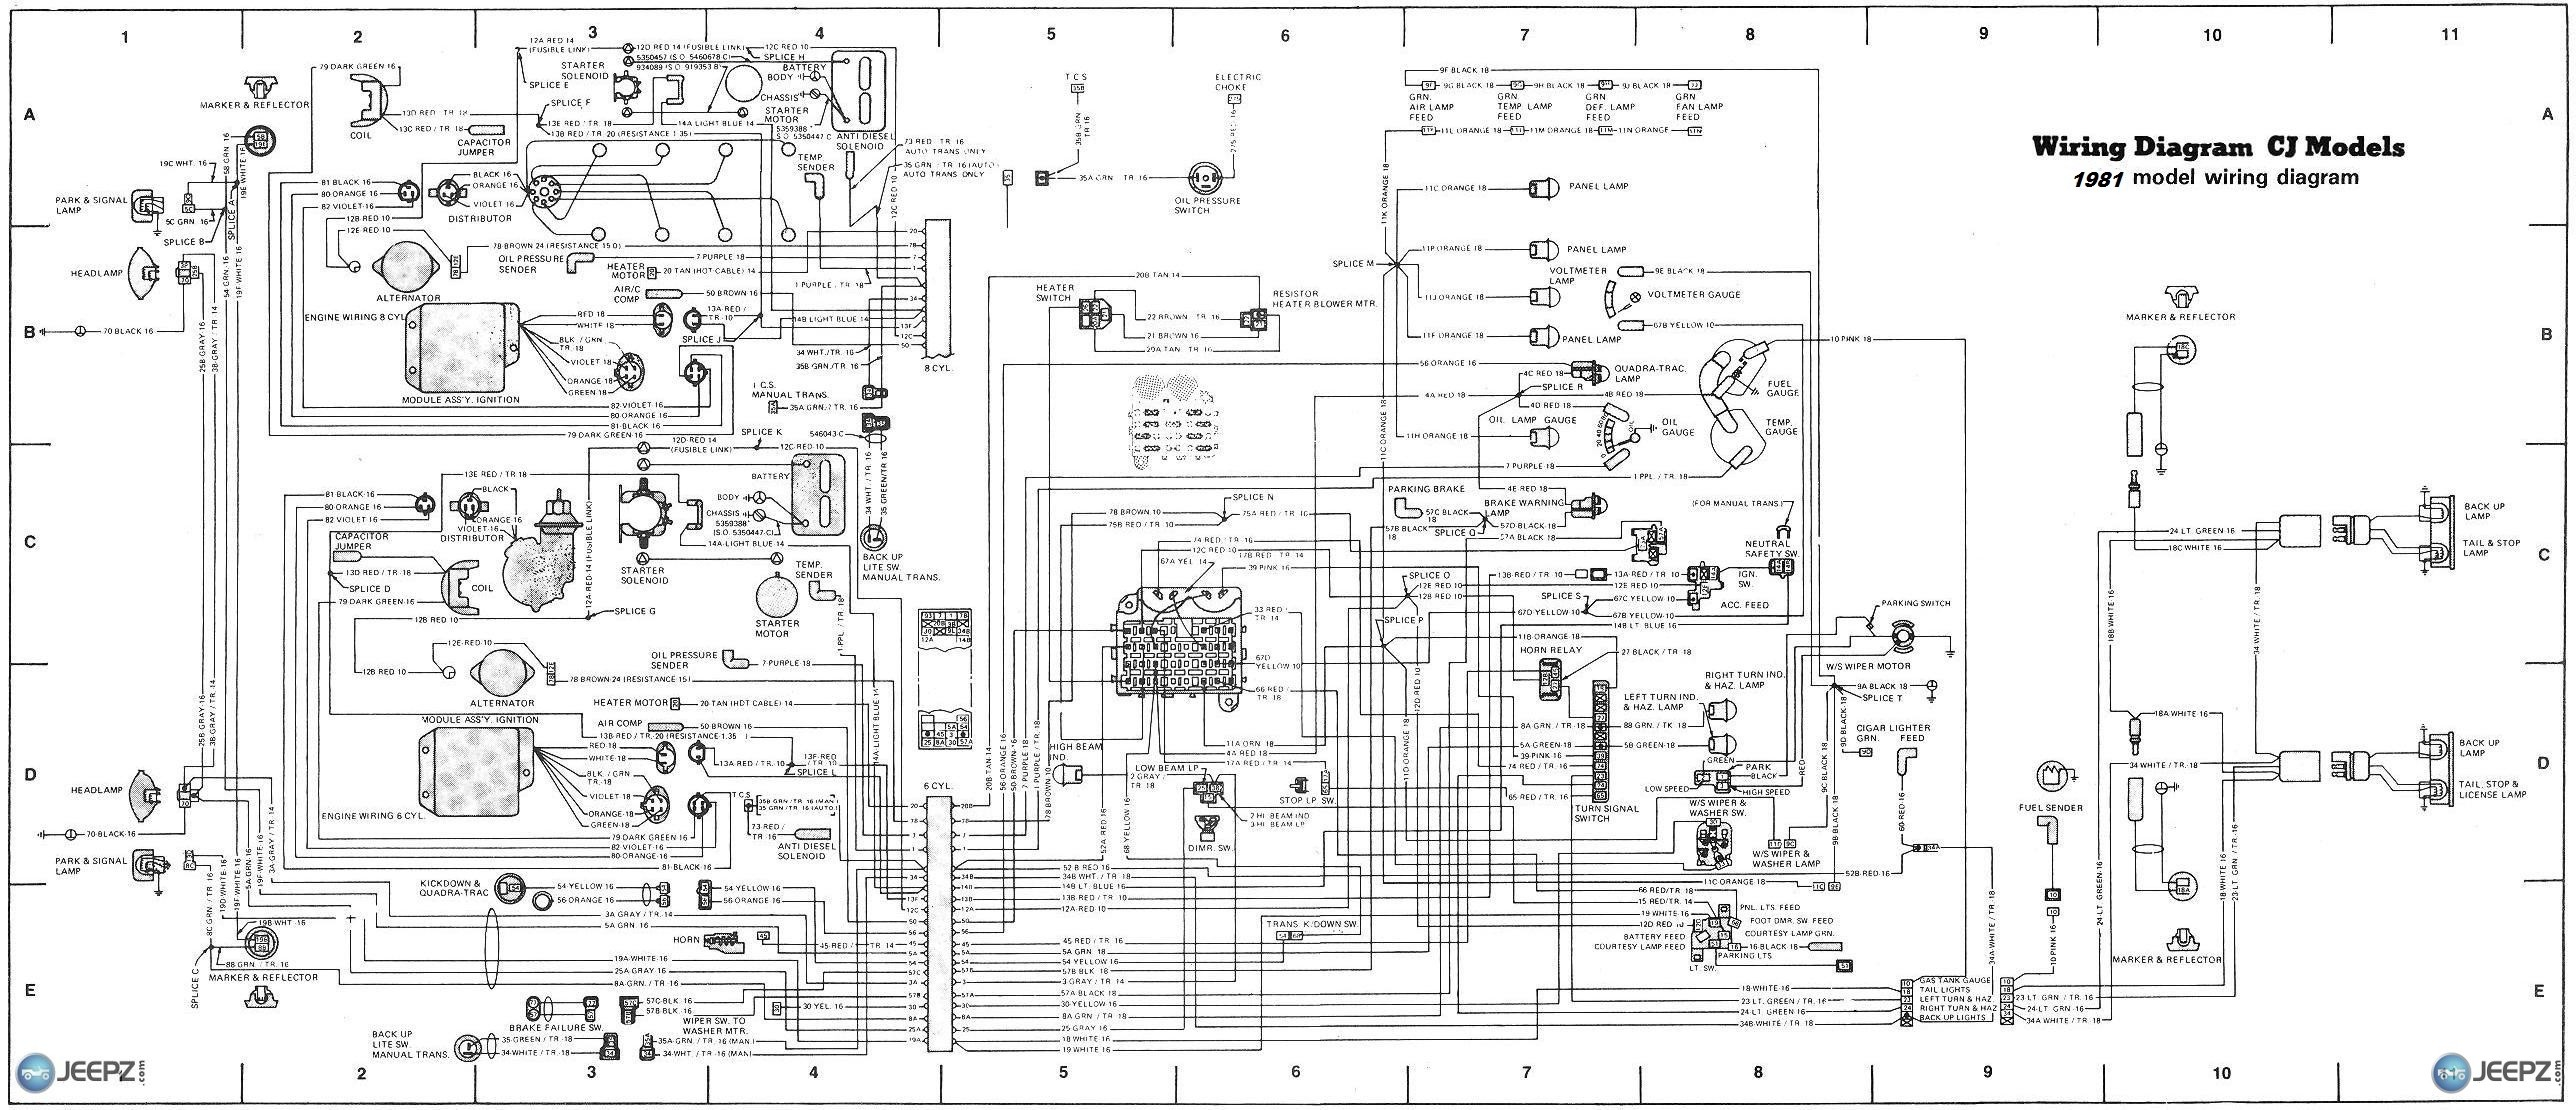 1981 Jeep Cj5 Wiring Harness Wiring Diagrams Cooperate Cooperate Chatteriedelavalleedufelin Fr